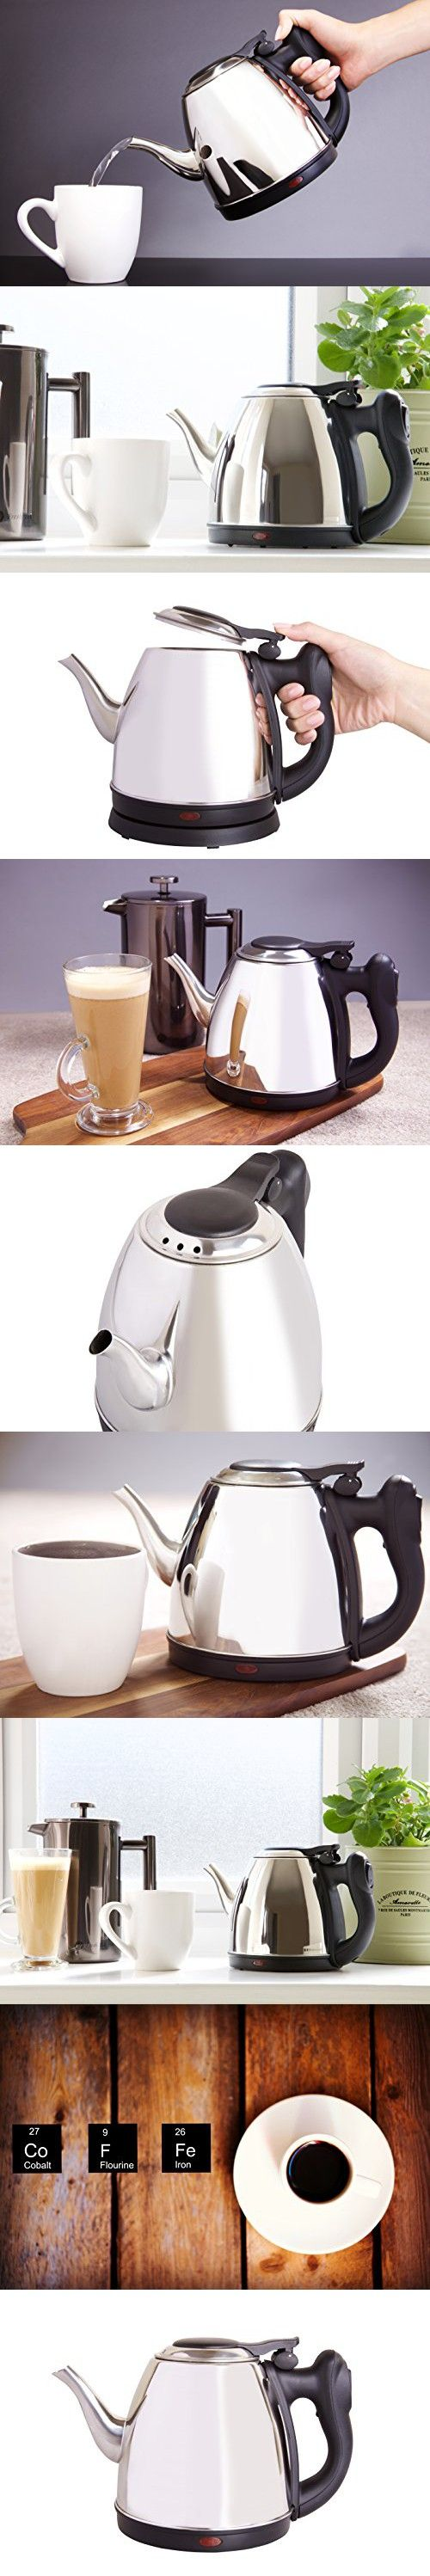 Best Small 4-Cup Stainless Steel Goose-neck Style Electric Tea Kettle with Precise Pouring. Great for Small Spaces, Quickly Boils Water for French Press Coffee Pot. 32oz, Cordless with Auto Shut Off.